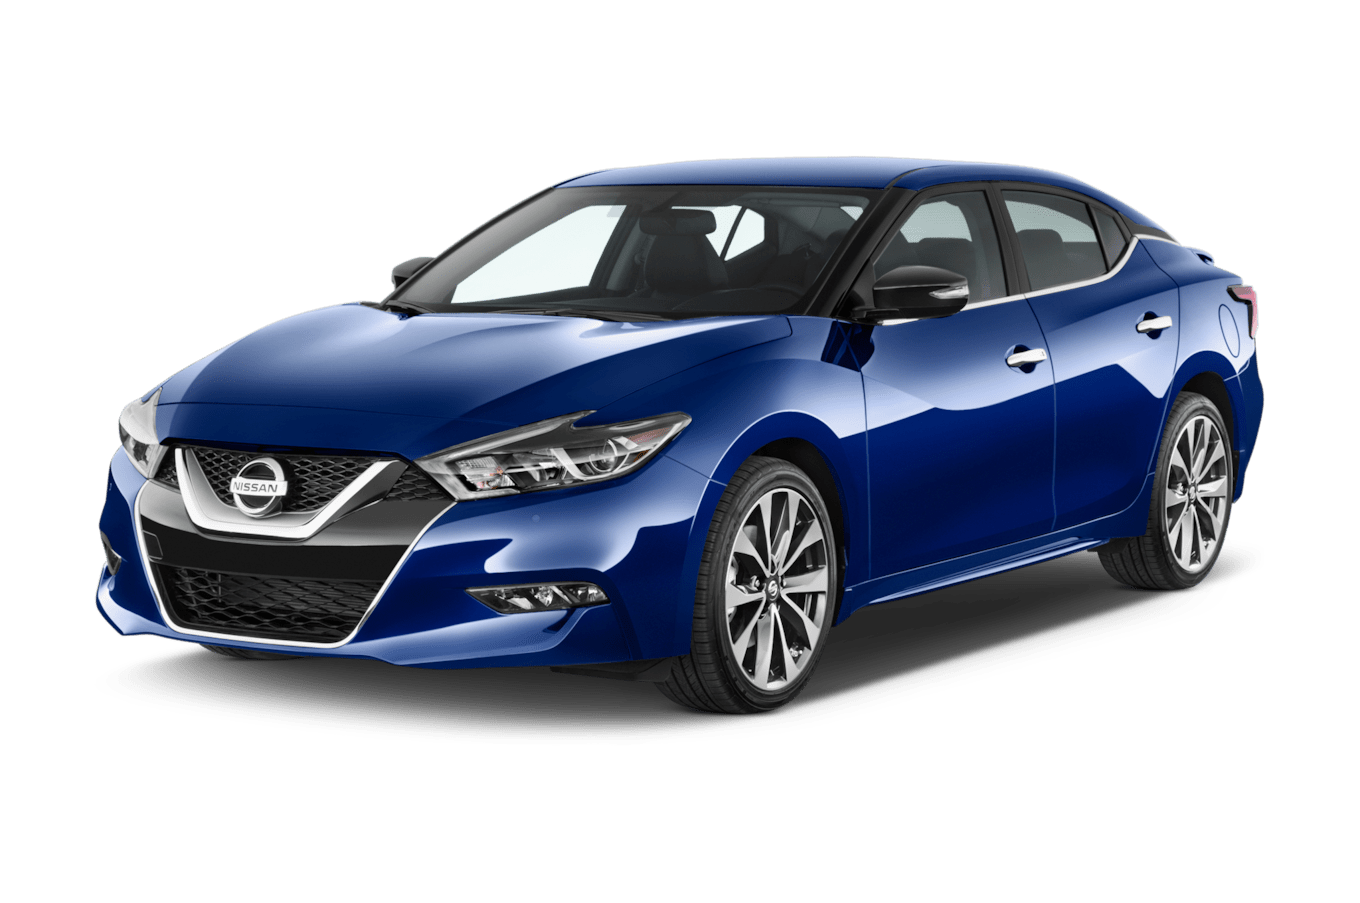 2016 nissan maxima reviews research maxima prices specs 2001 bmw z3 blue as well 2001 nissan altima engine diagram further [ 392:261 x 1360 Pixel ]